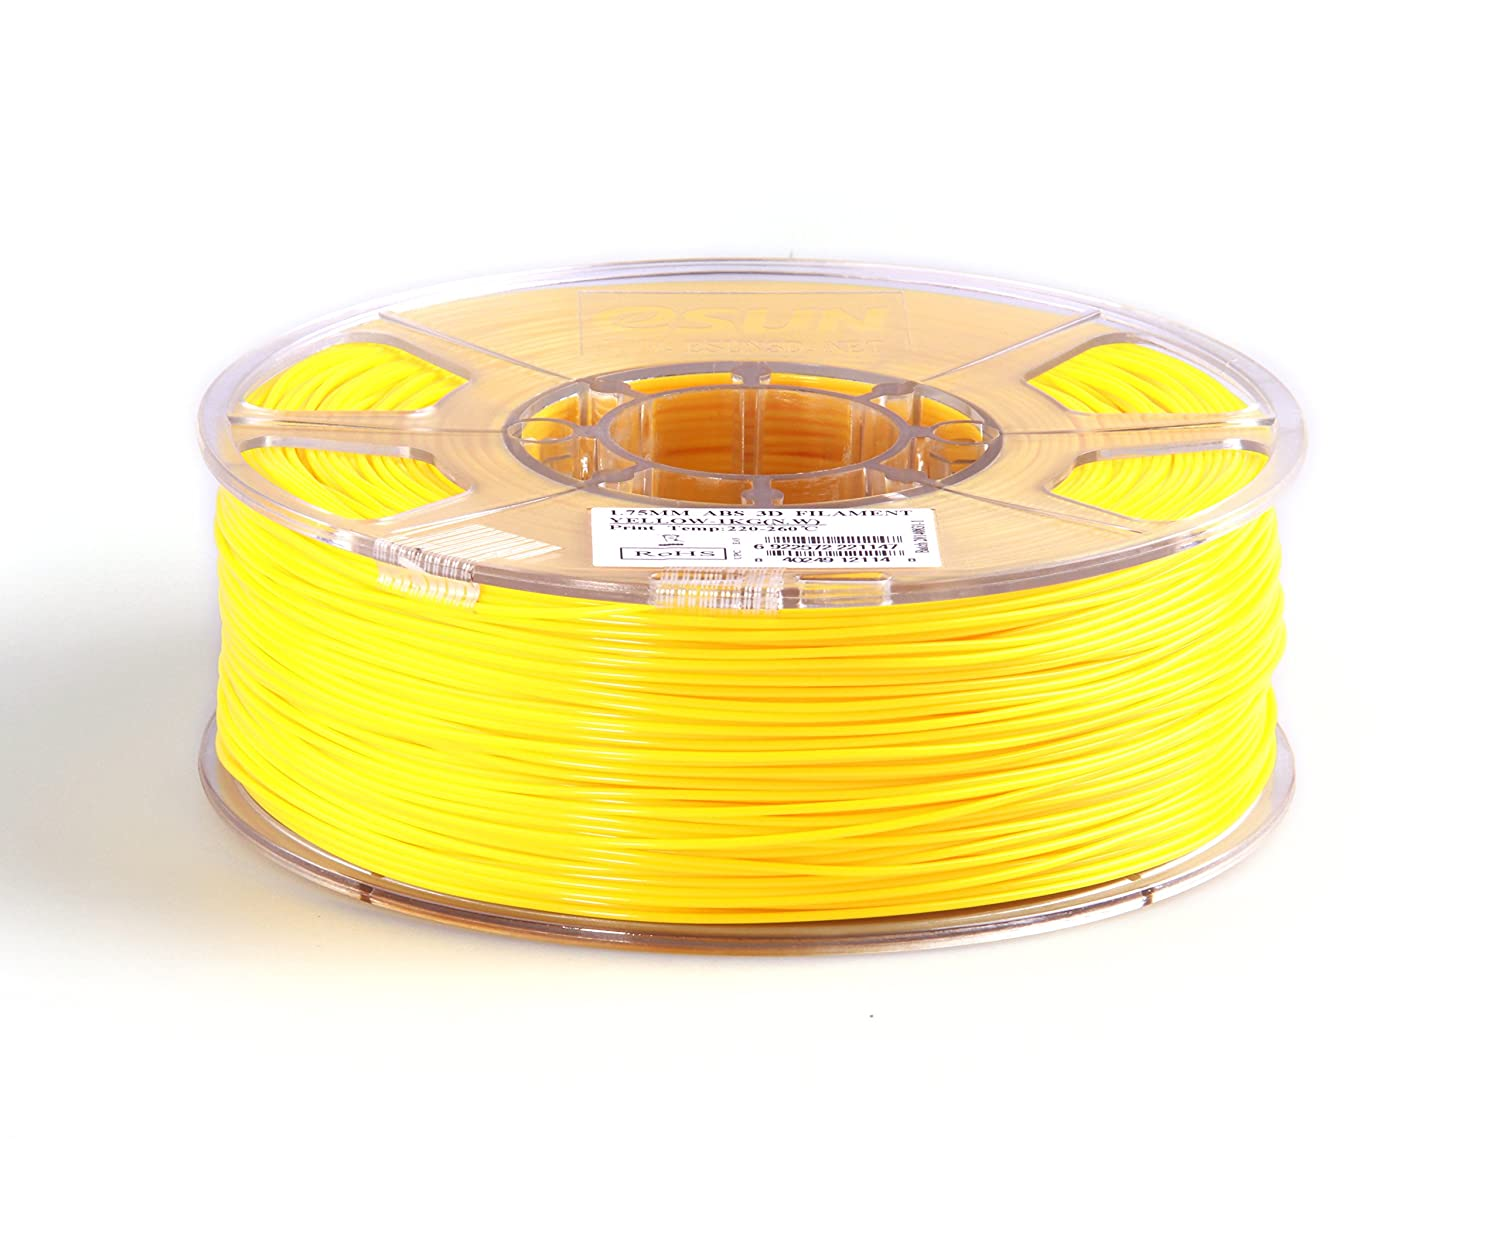 eSUN 1.75mm Yellow ABS 3D Printer filament 1kg Spool 2.2lbs Yellow ABS175Y1